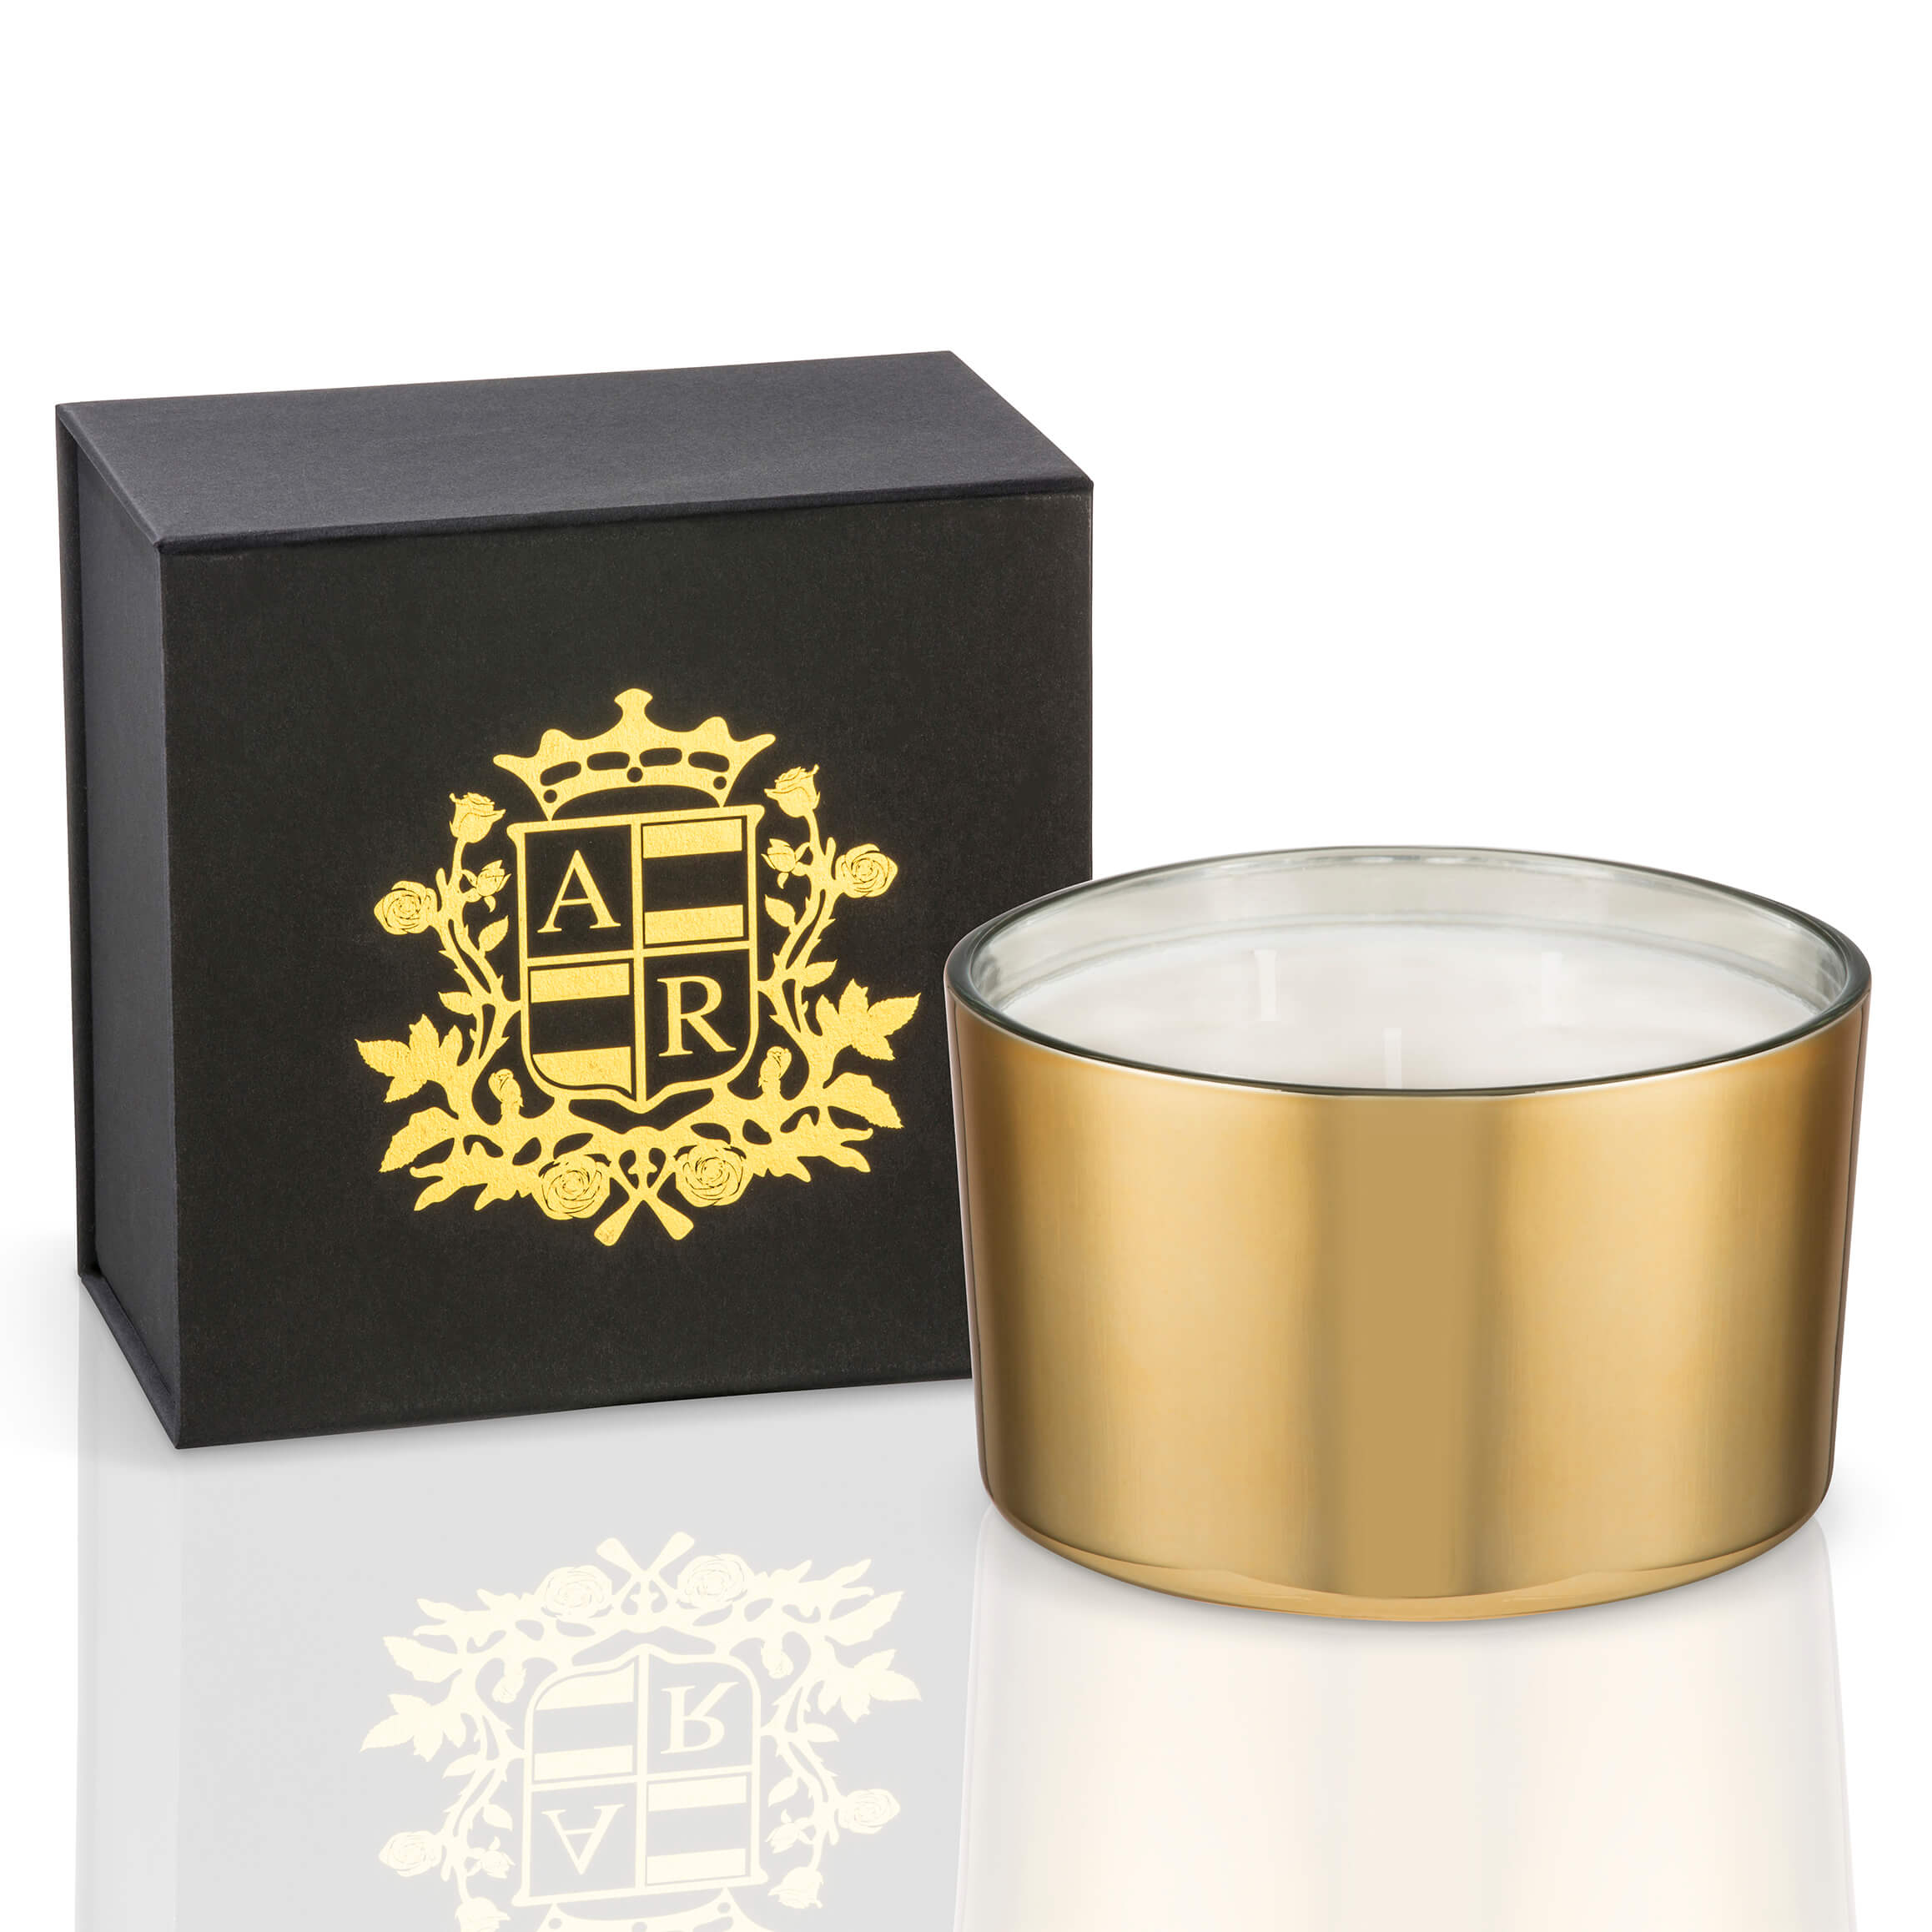 Abbey Rose Ultra Large Three Wick Candle, 500g, Burn Time 70 Hours, RRP $129.jpg